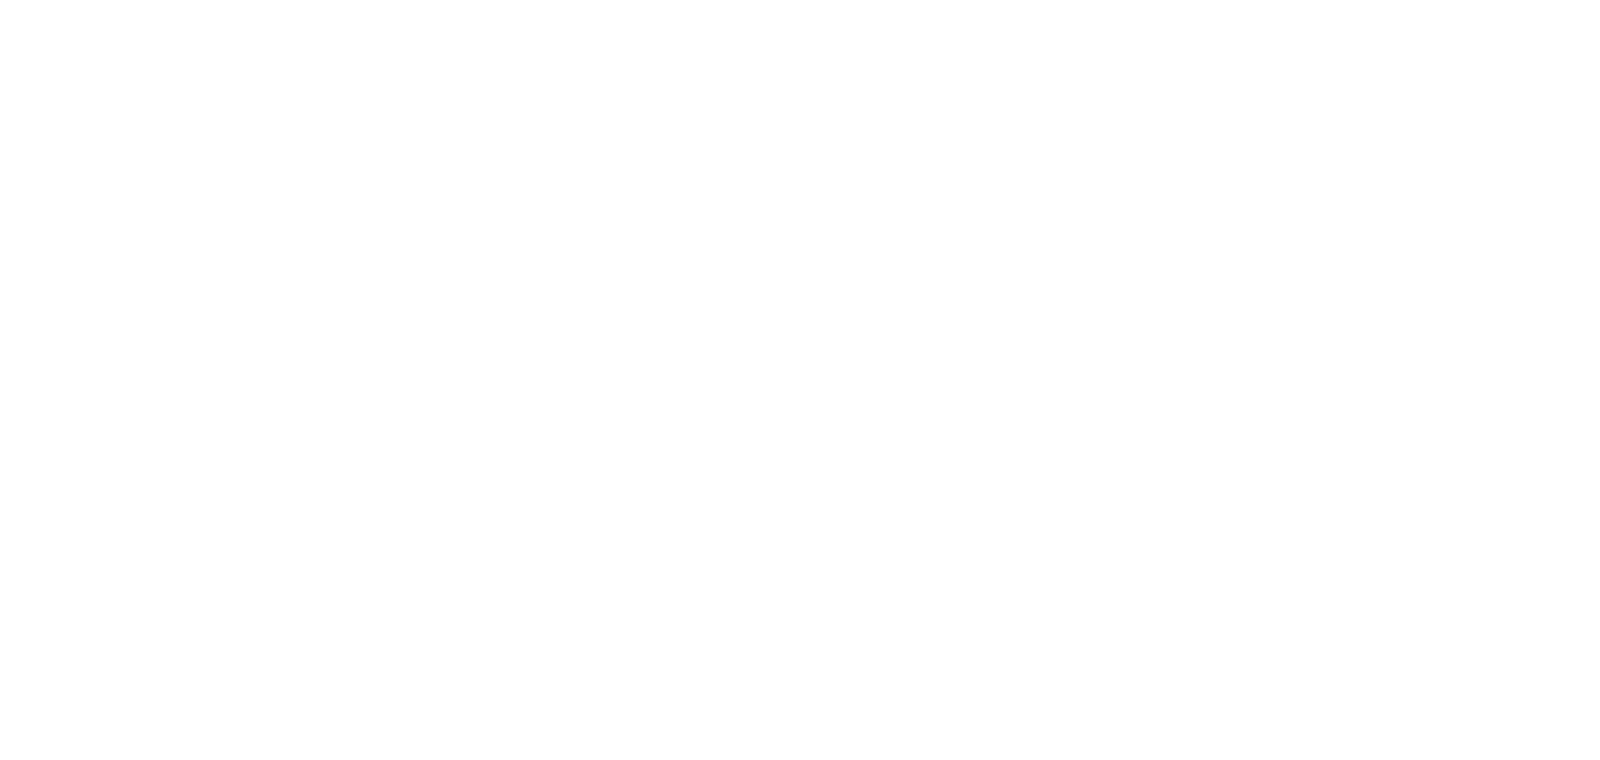 Baha Mar: Da Poke Bowl